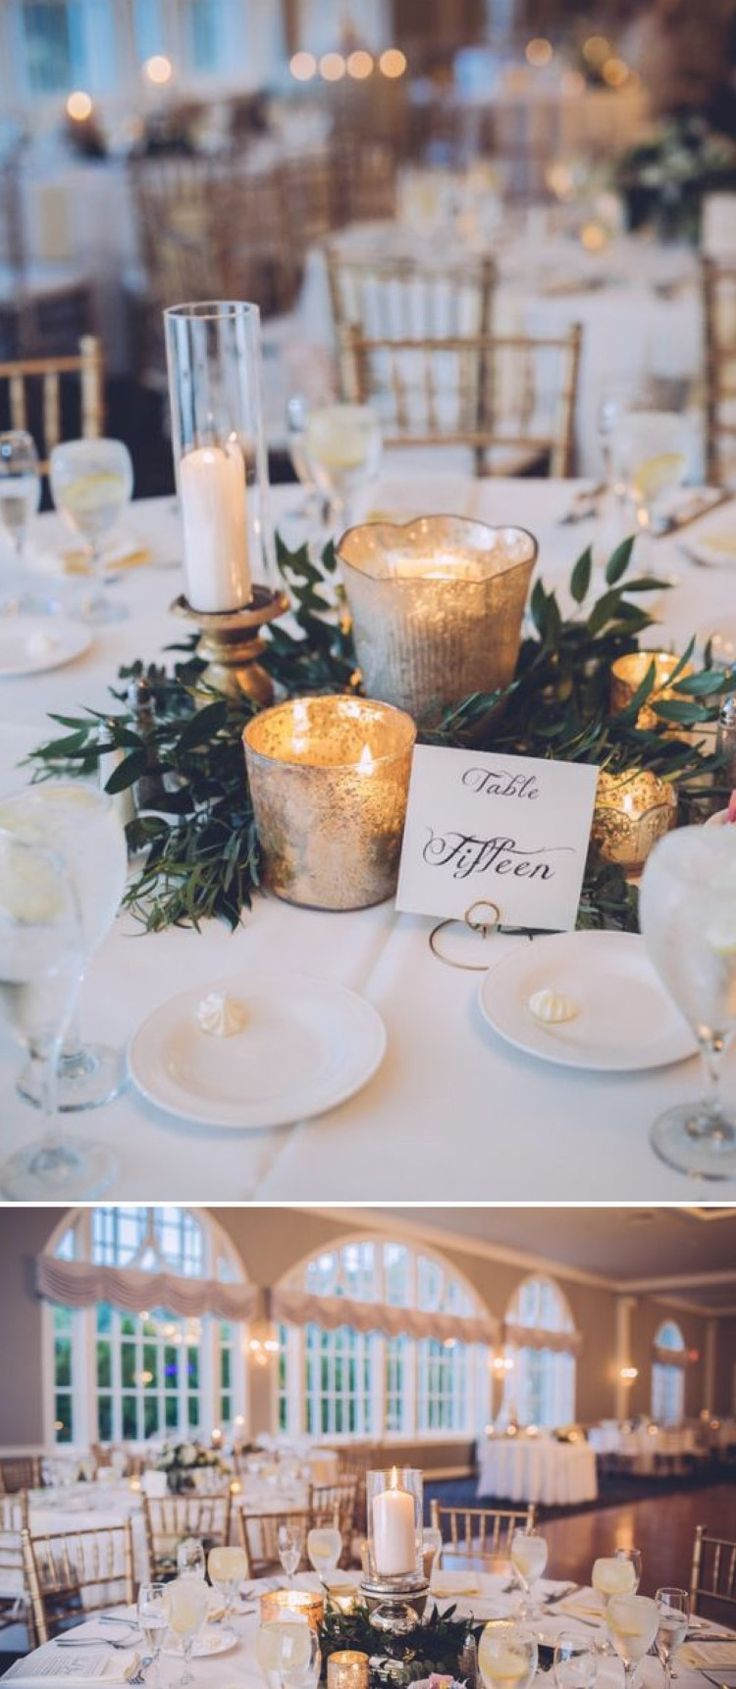 Create an elegant feel at your wedding reception with table decorations consisting of mercury glass candle holders paired with greenery instead of flowers. See more from this glamorous wedding here: http://www.beaconln.com/blog/kelsey-andrew-real-wedding/